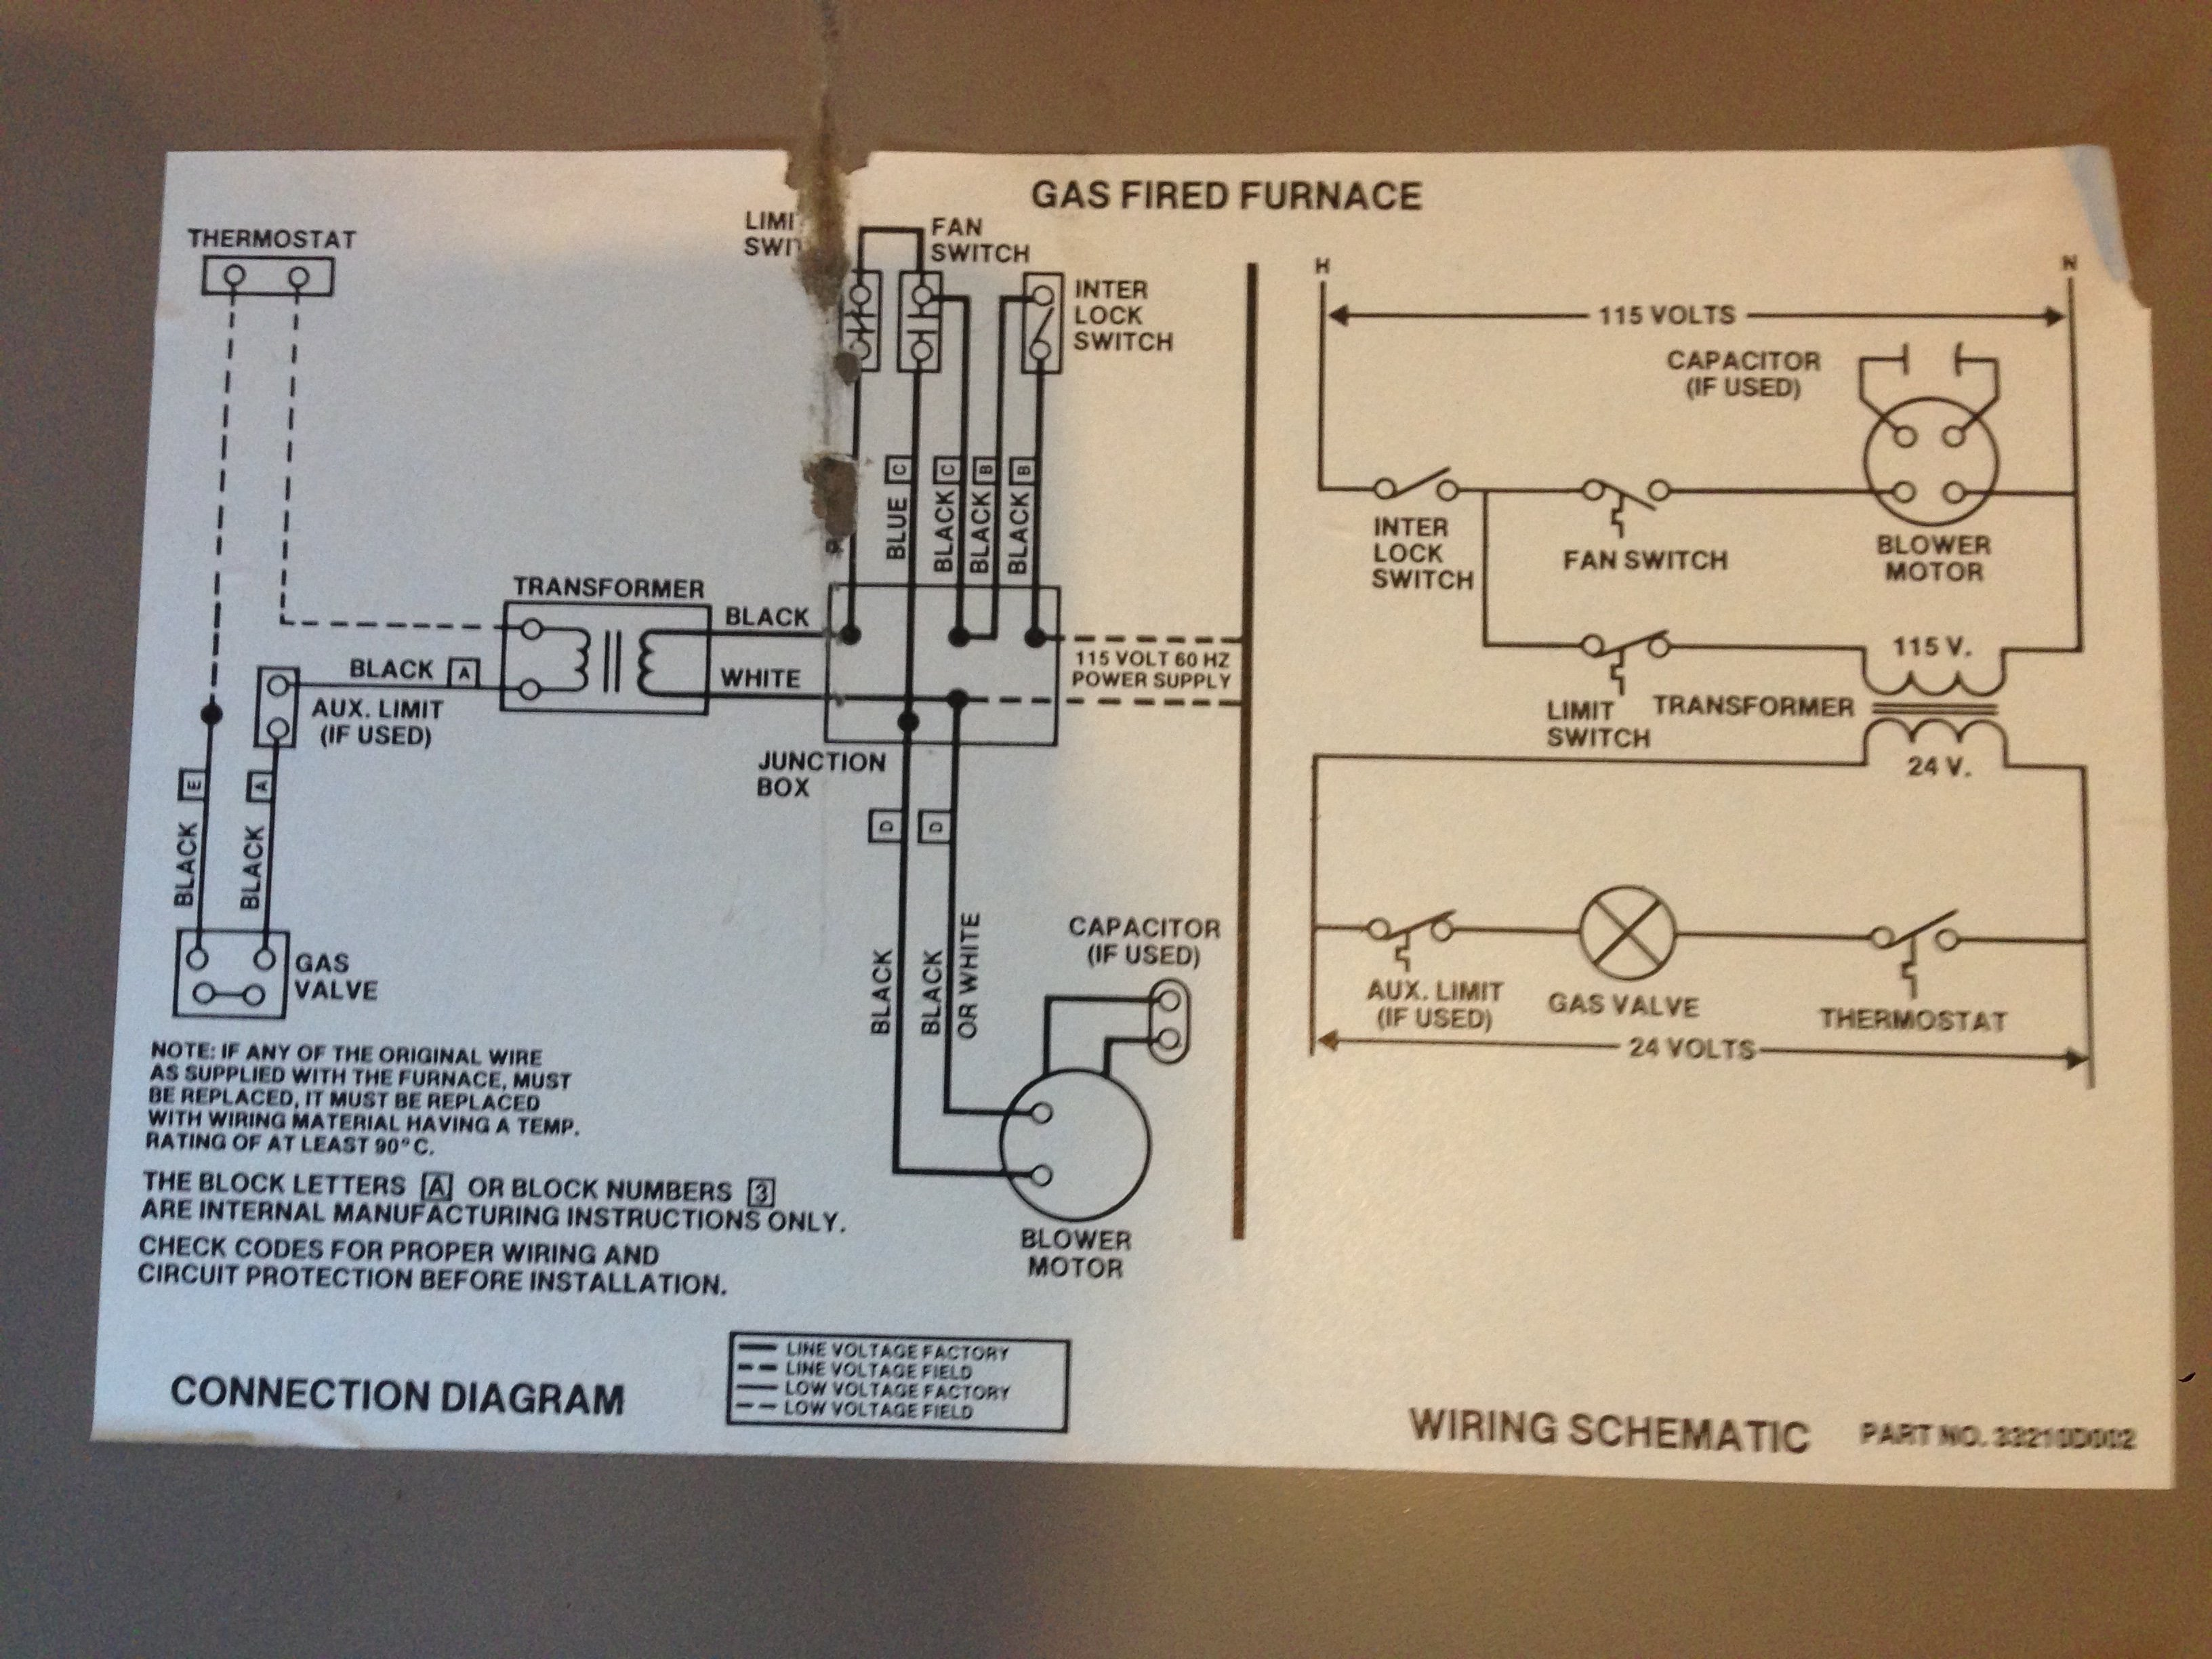 gas heater wiring diagram rheem gas heater wiring diagram data wiring diagrams  rheem gas heater wiring diagram data